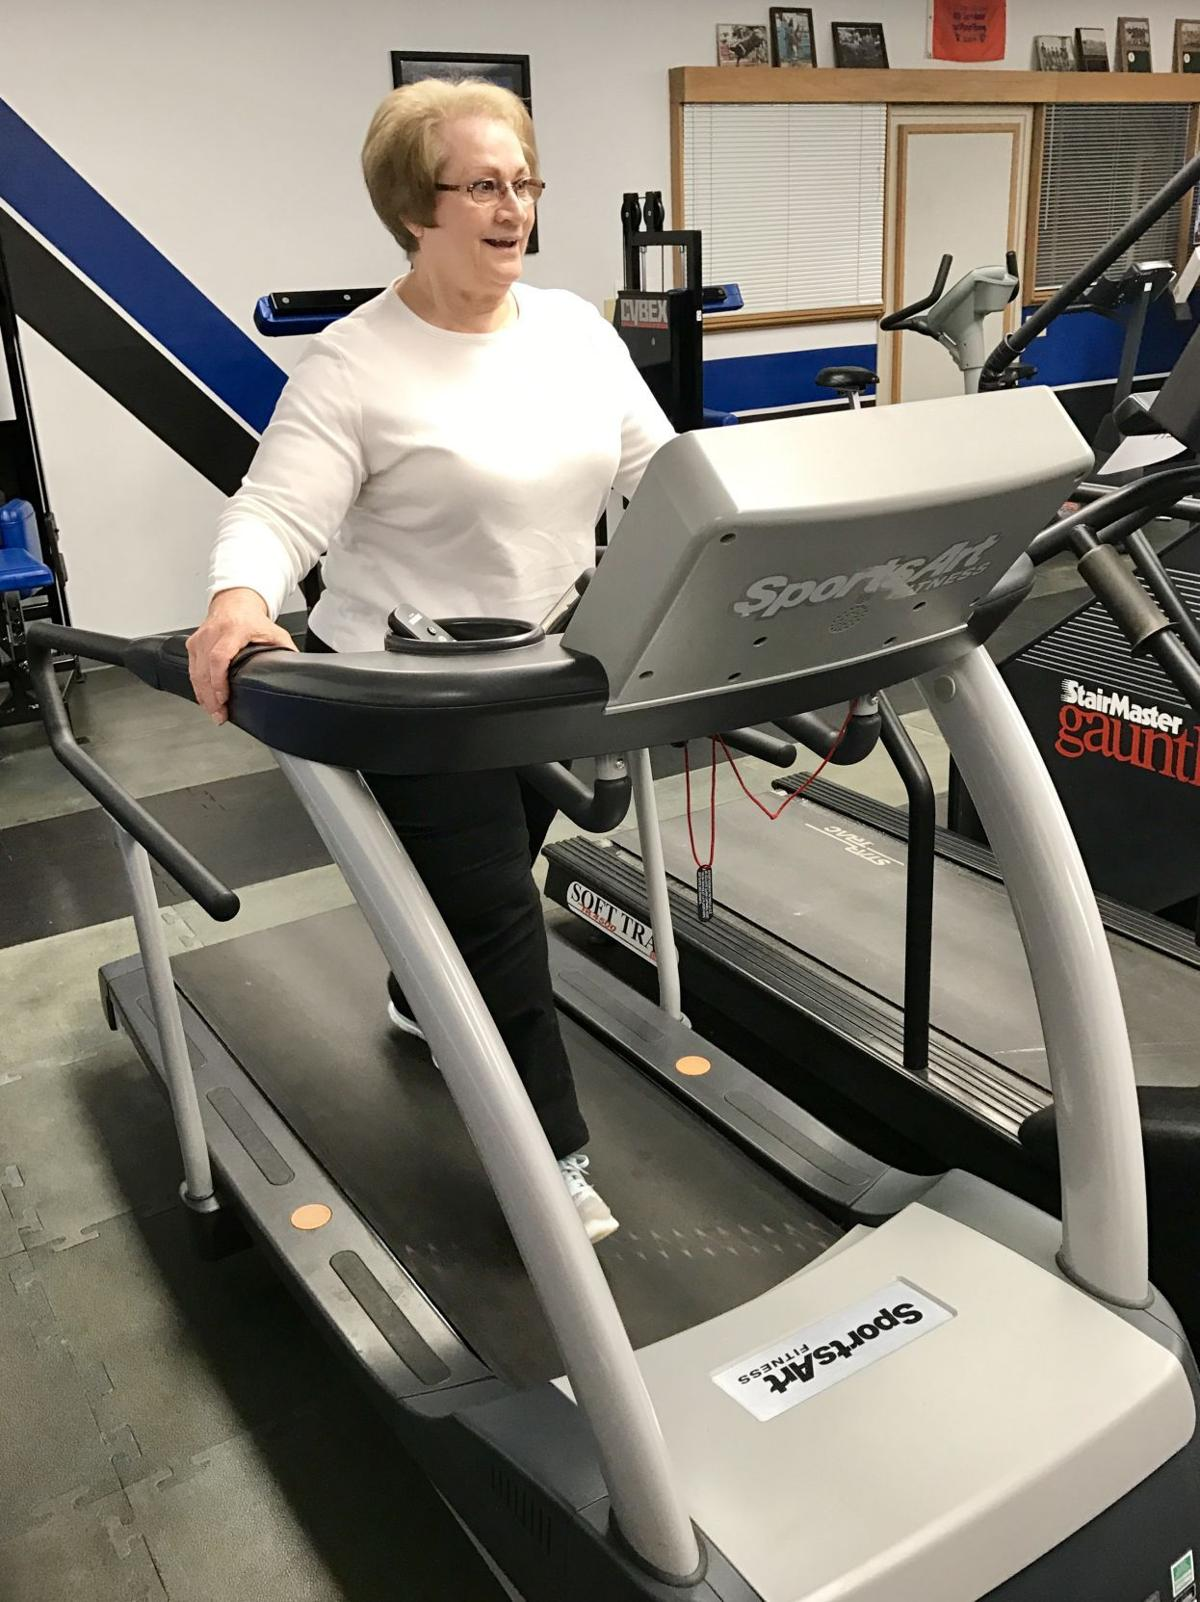 Buysell physical therapy equipment - For Pain Sufferers Physical Therapy Offers Treatment Without Opioids Local Herald Review Com